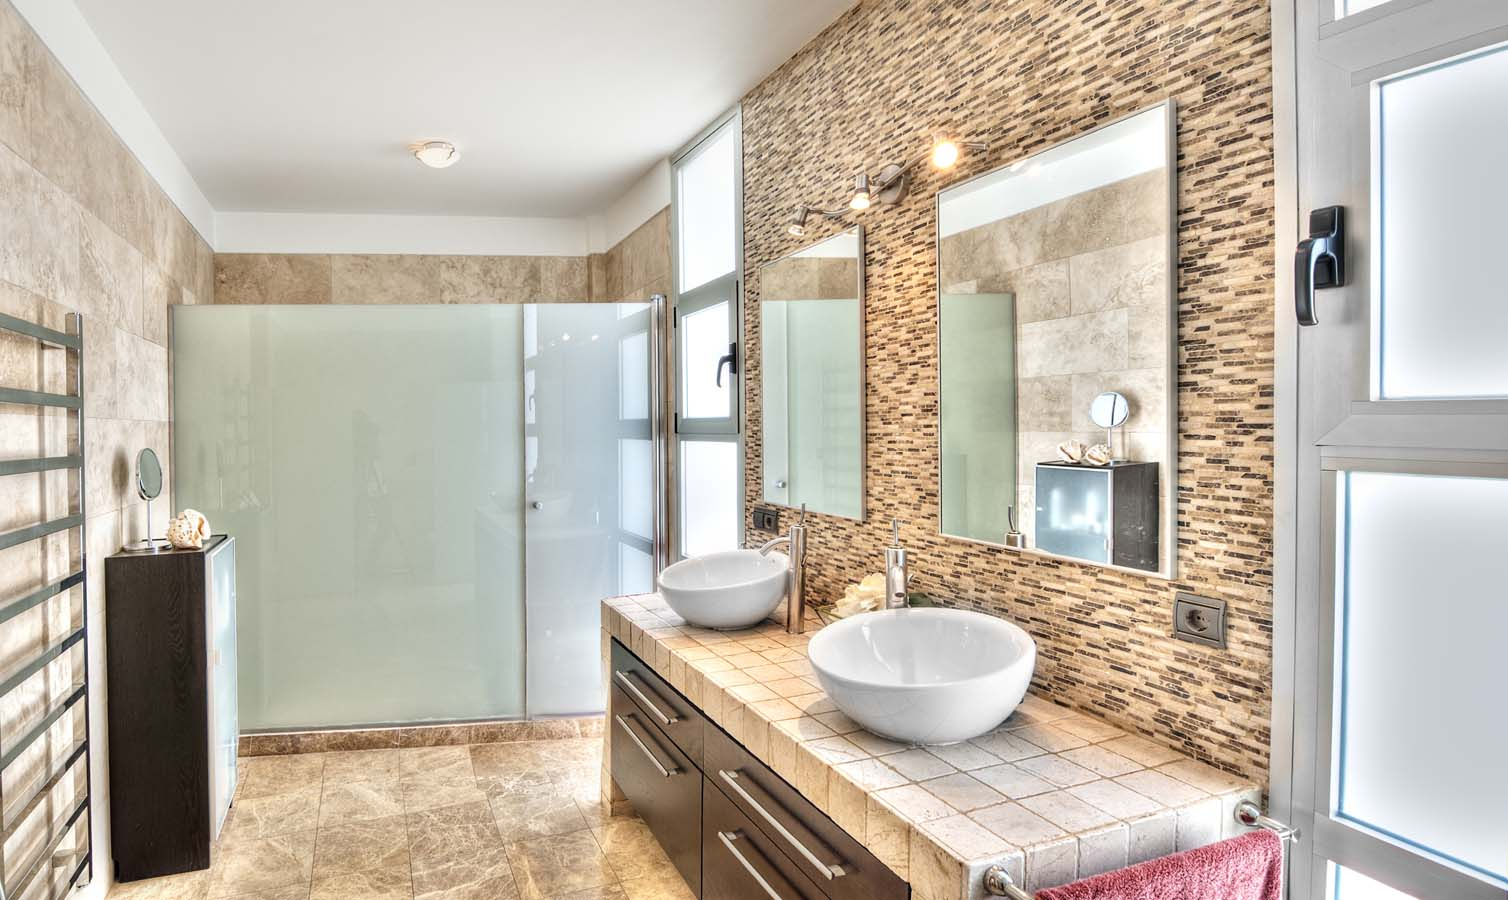 Bathroom Mirrors With Tv Built In Vanity Mirror Tv Order Vanishing Television For Your